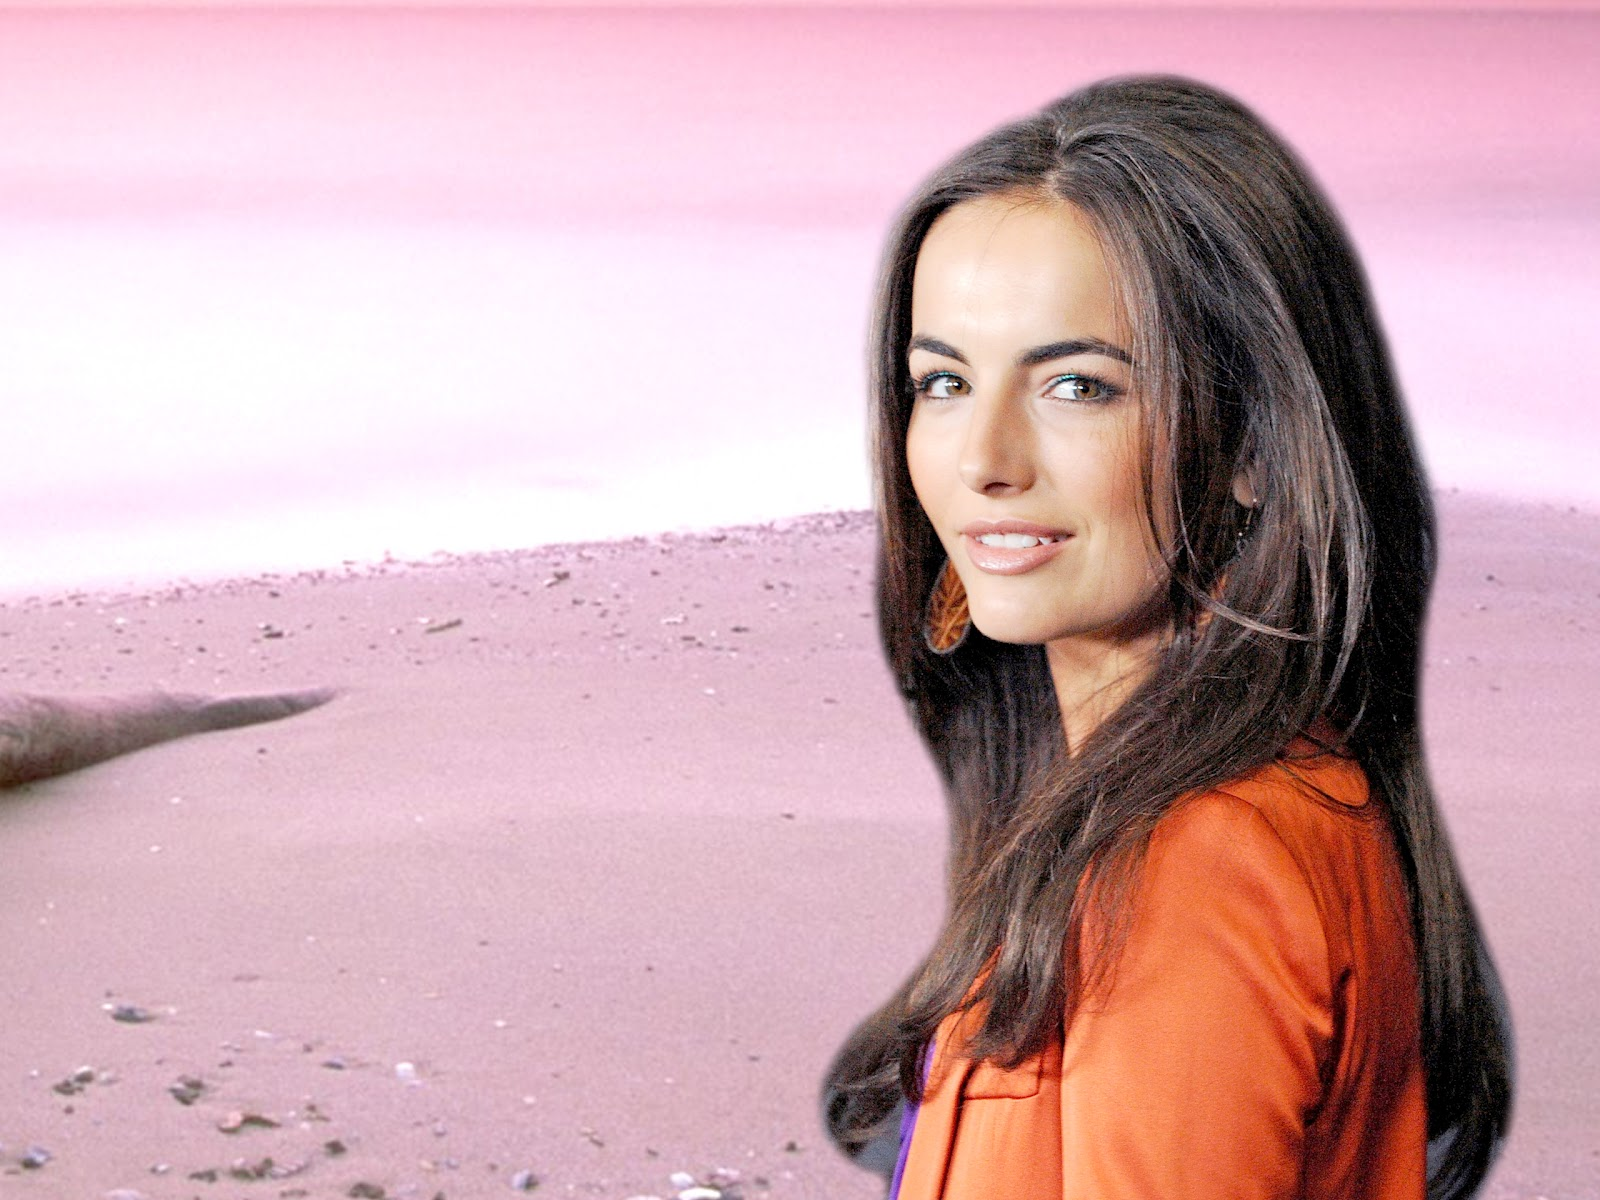 Camilla Belle New HD Wallpapers 2012 ~ HOT CELEBRITY: Emma Stone